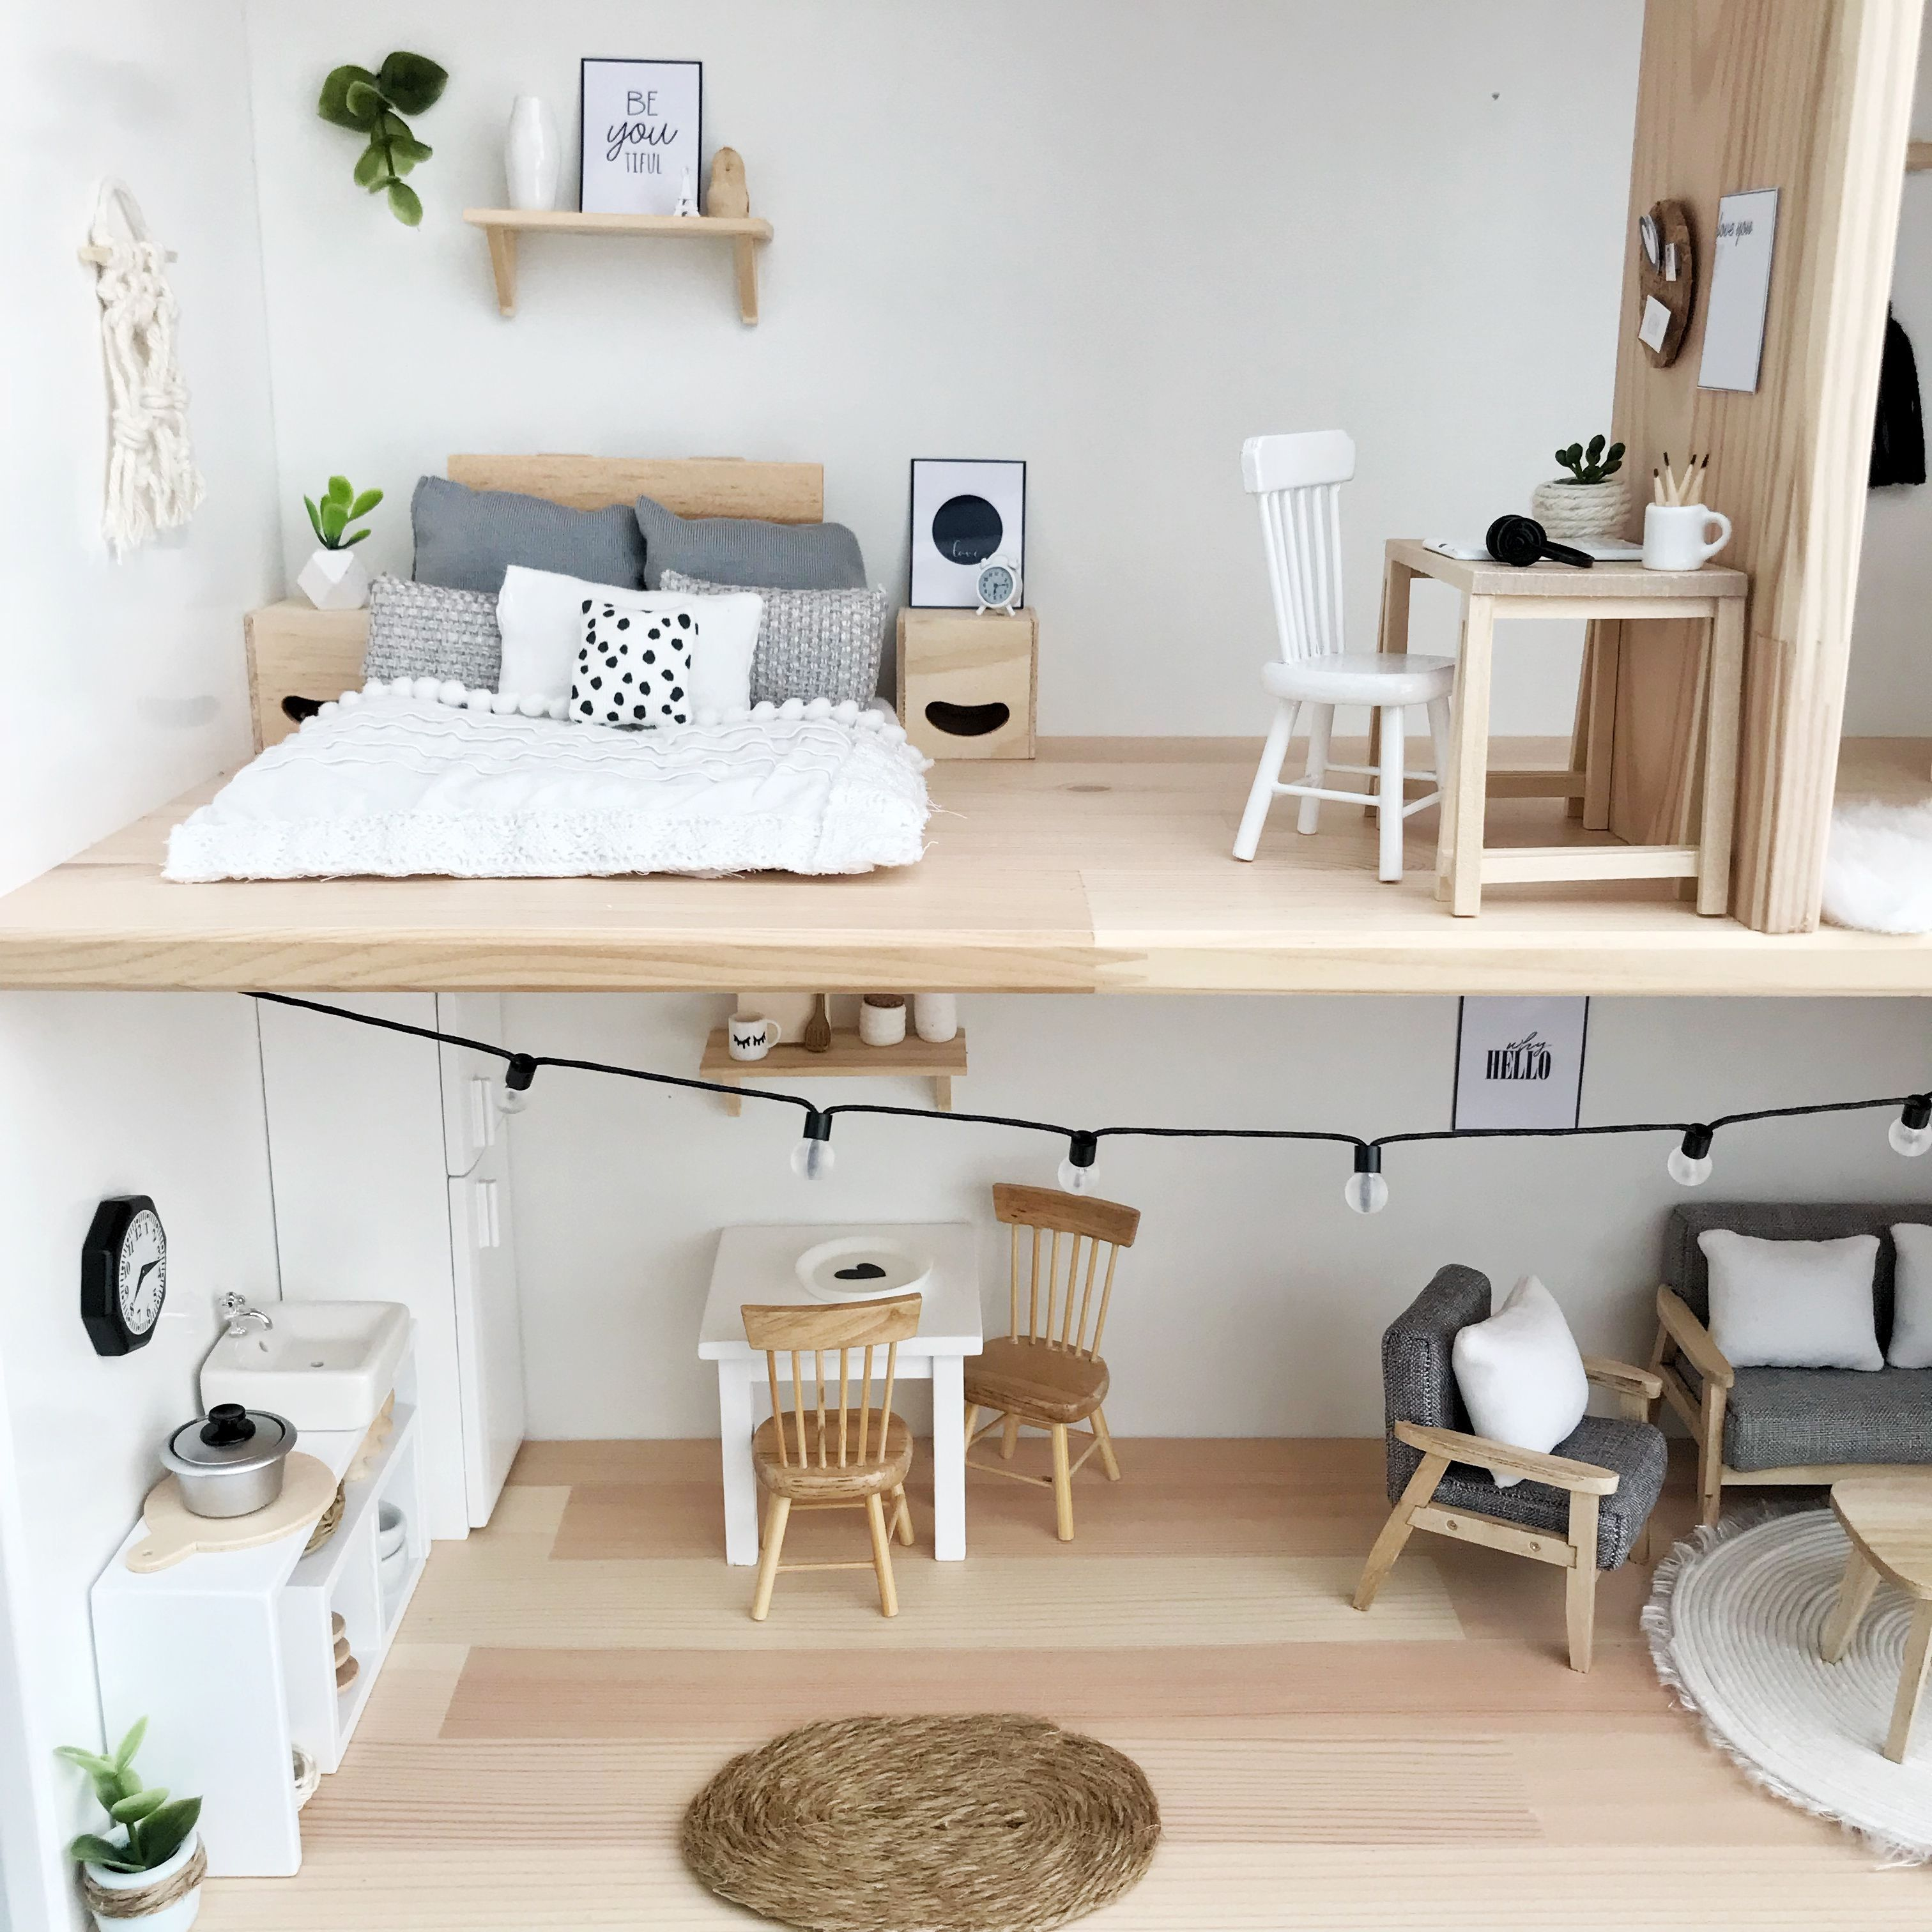 43 simple furniture ideas for modern tiny house in 2020 (mit